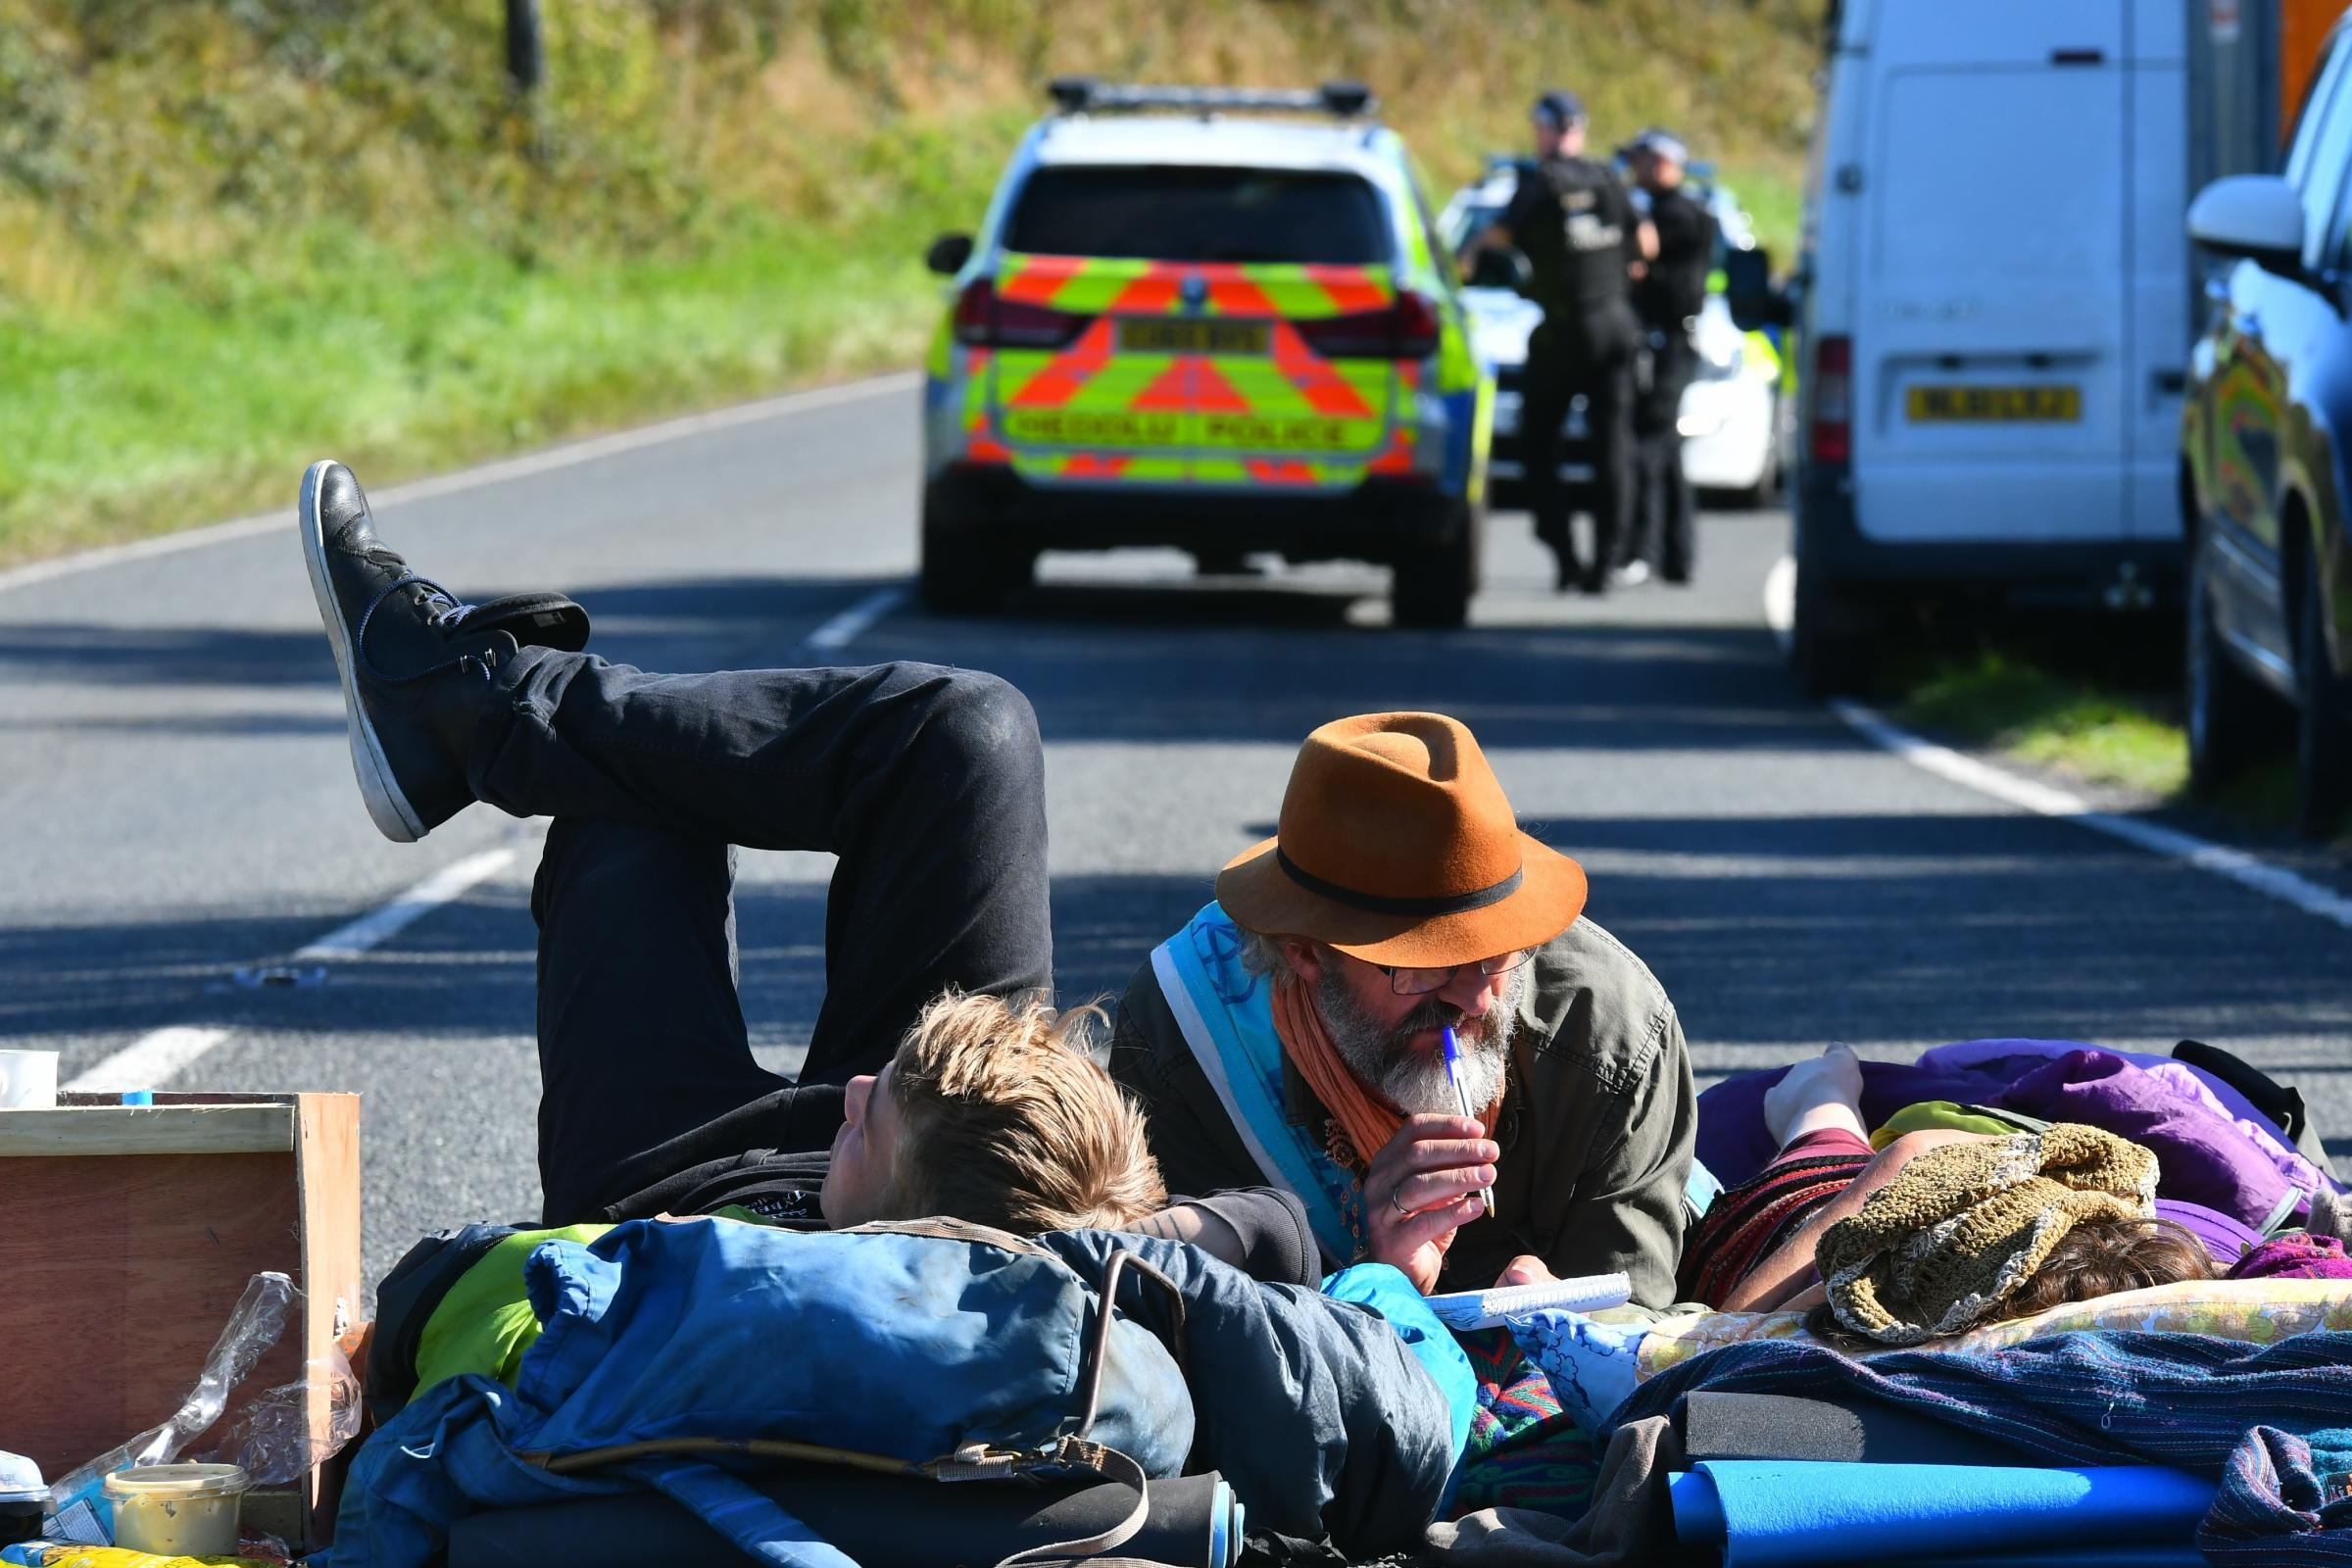 Extinction Rebellion Valero protesters not giving up